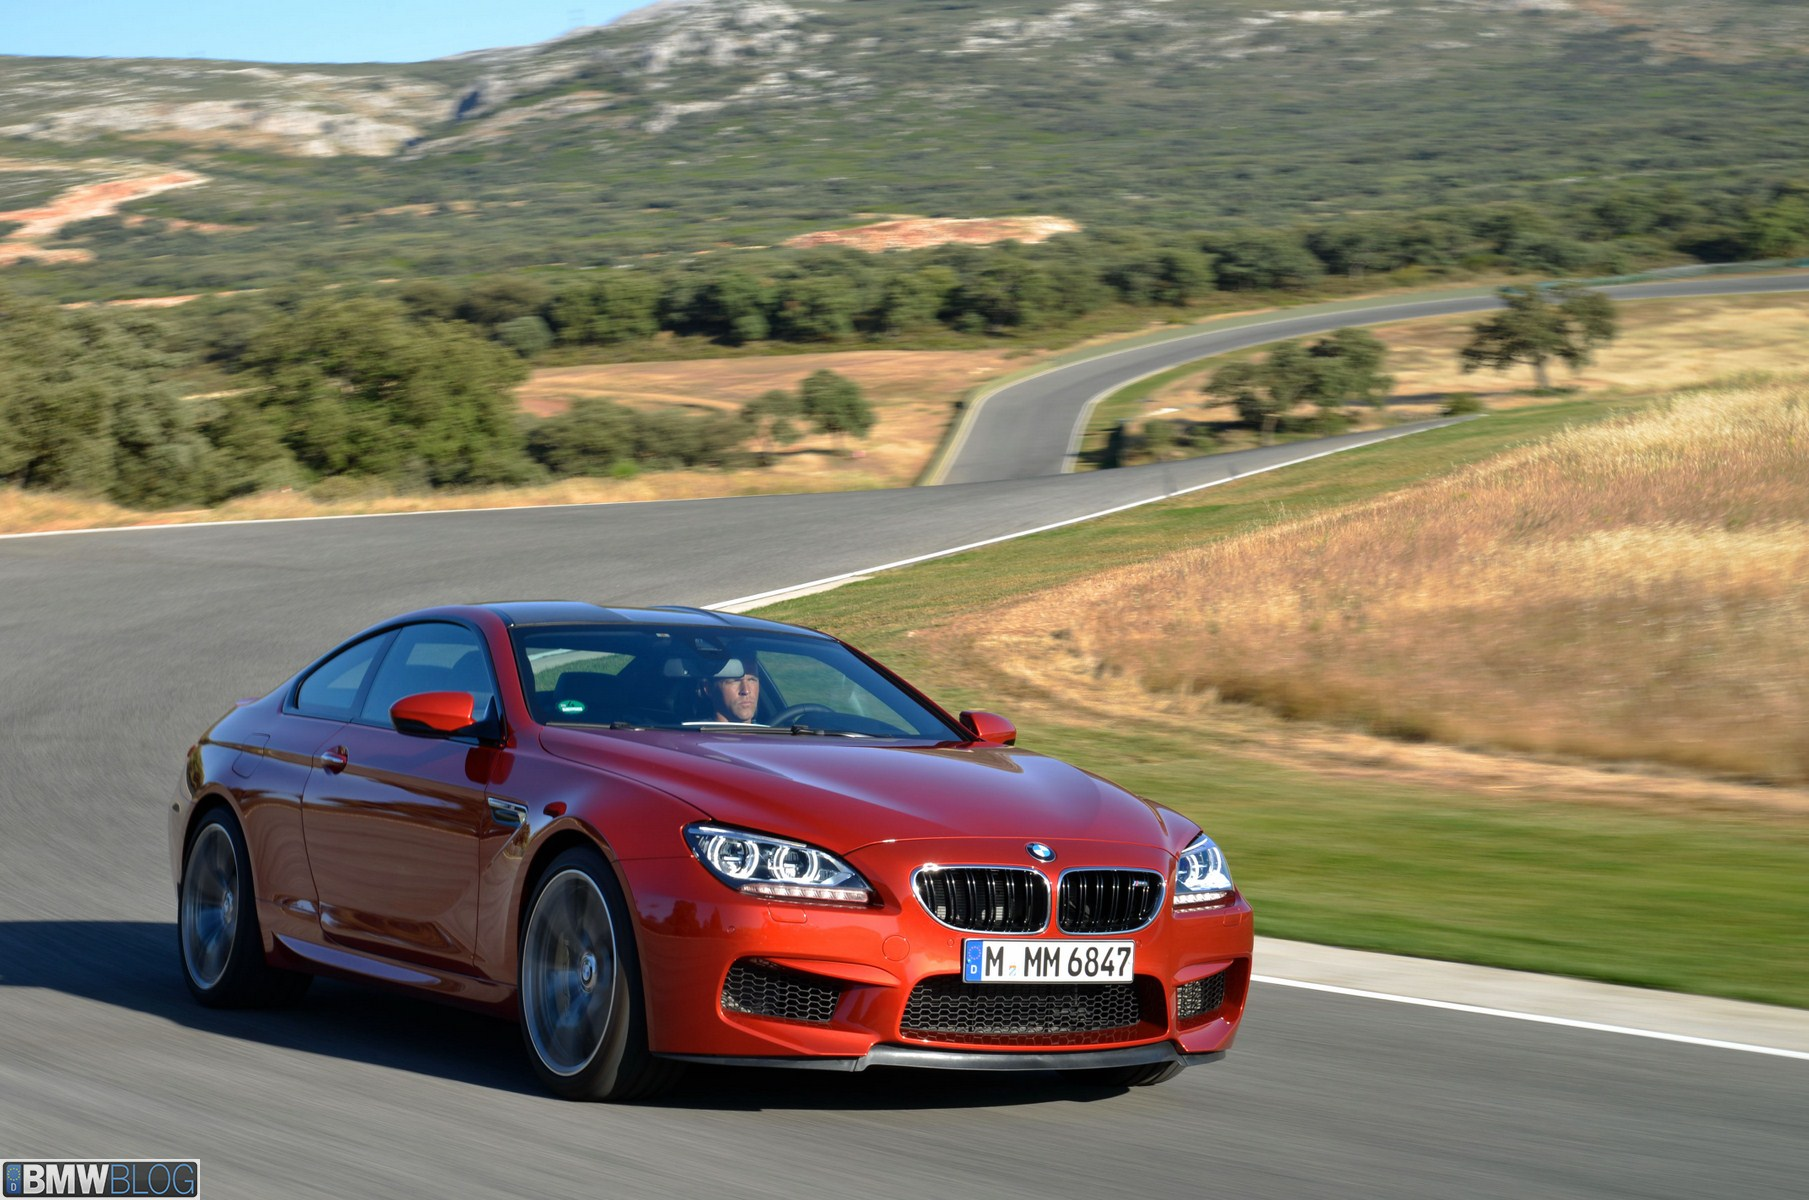 Video: 2013 BMW M6 Coupe Mile High 0-60 MPH Performance test